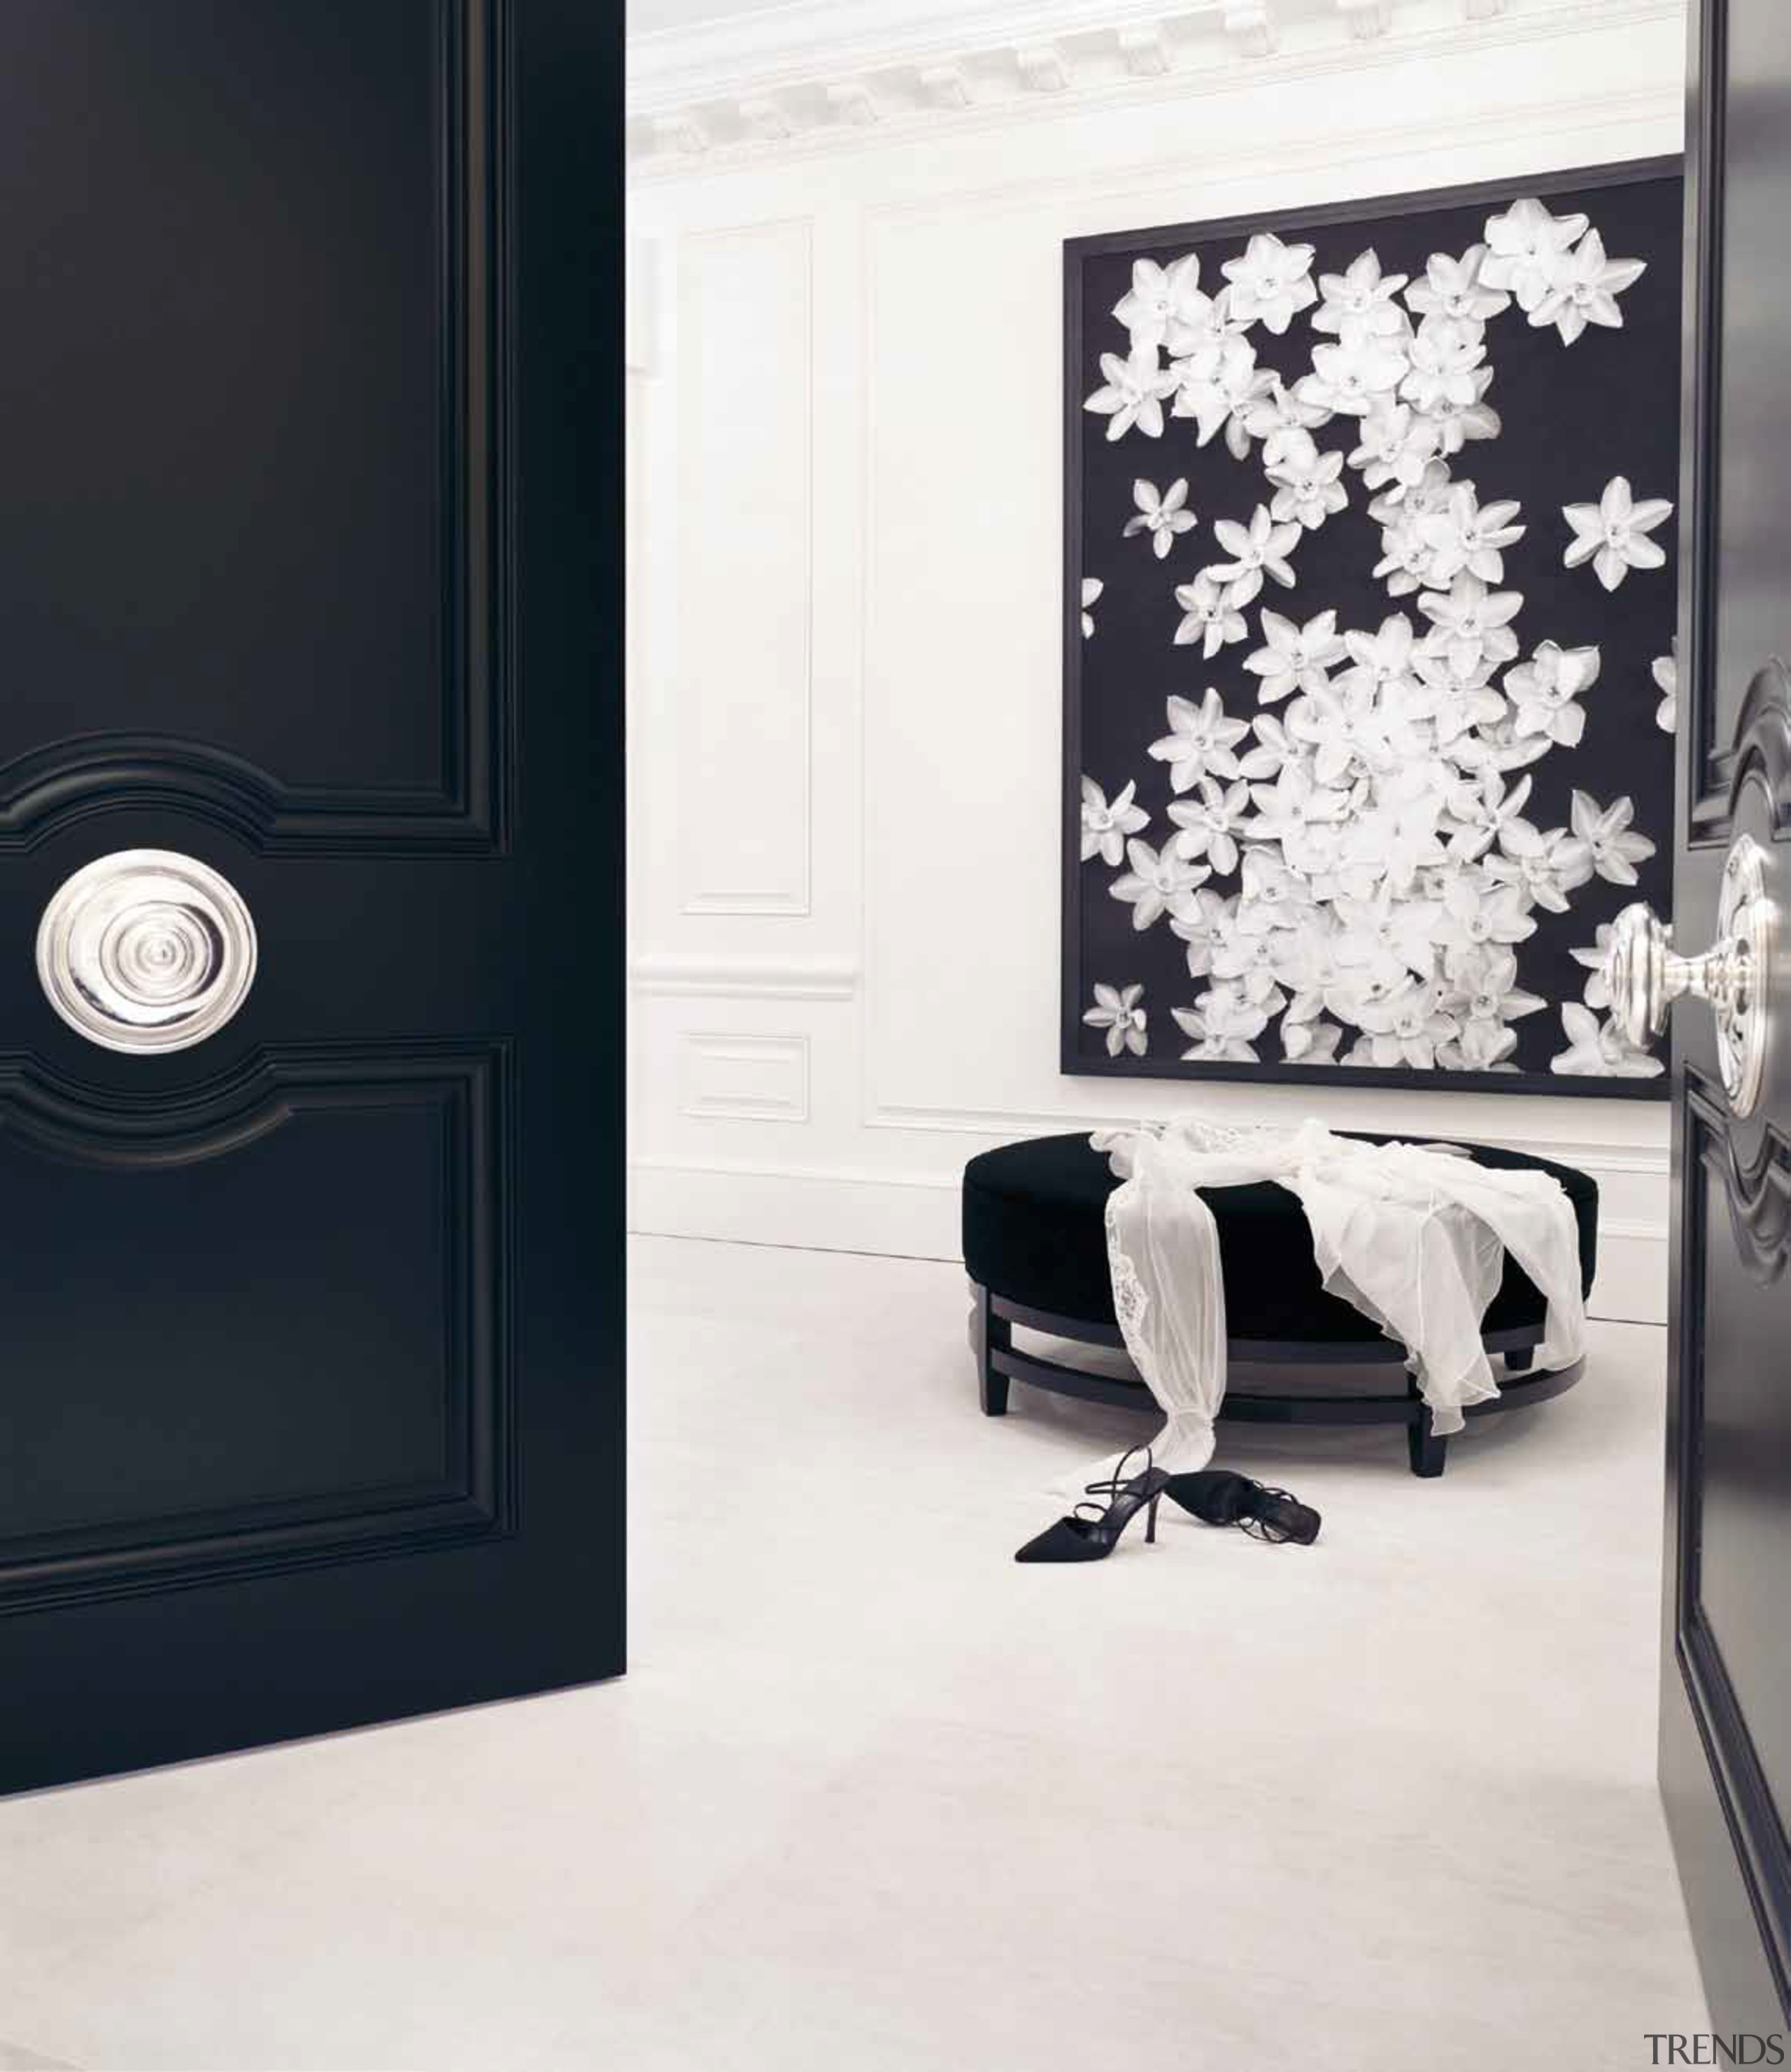 PB220 by Piet Boon - Solid Knob Fixed black, black and white, floor, flooring, furniture, interior design, wall, white, black